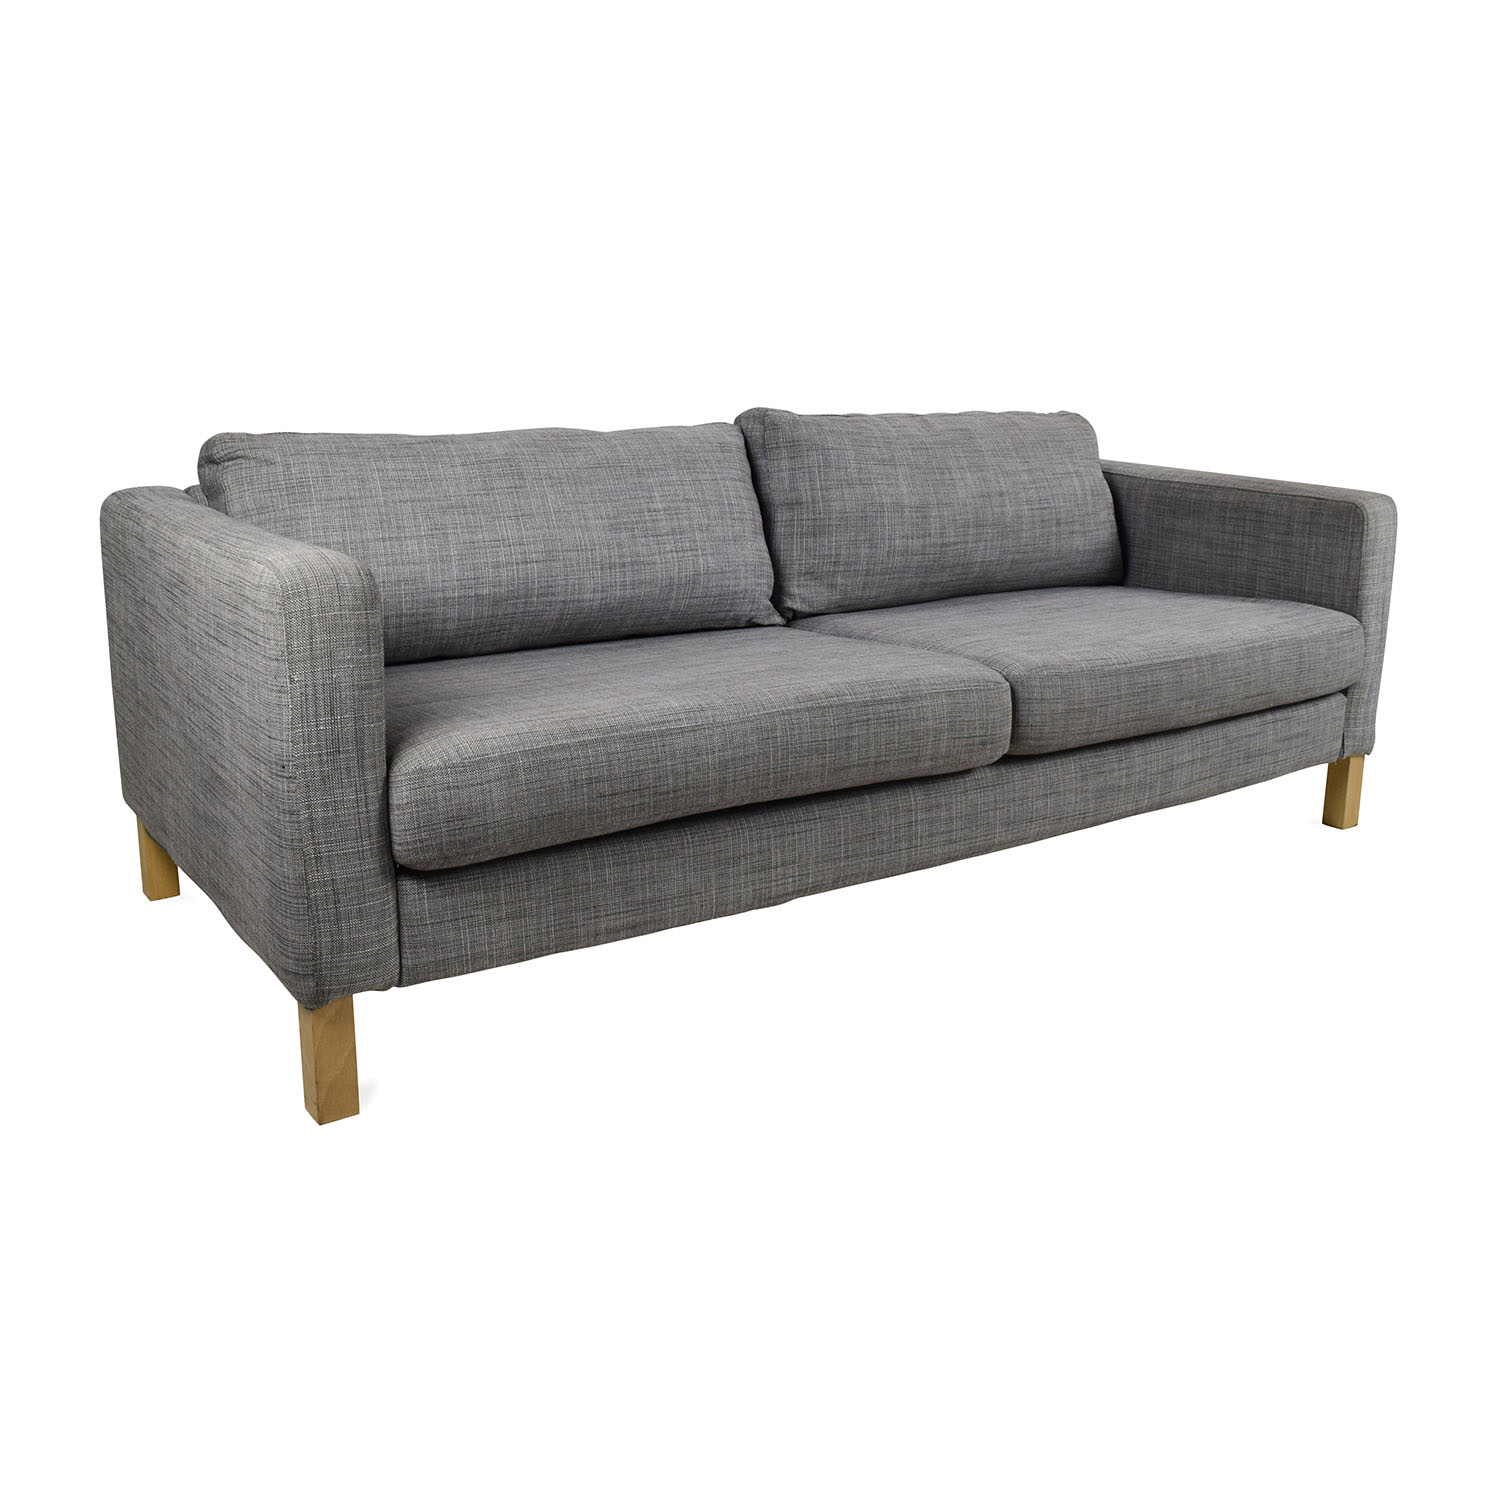 craigslist sofa bed singapore catnapper riley reclining reviews ikea used furniture home design